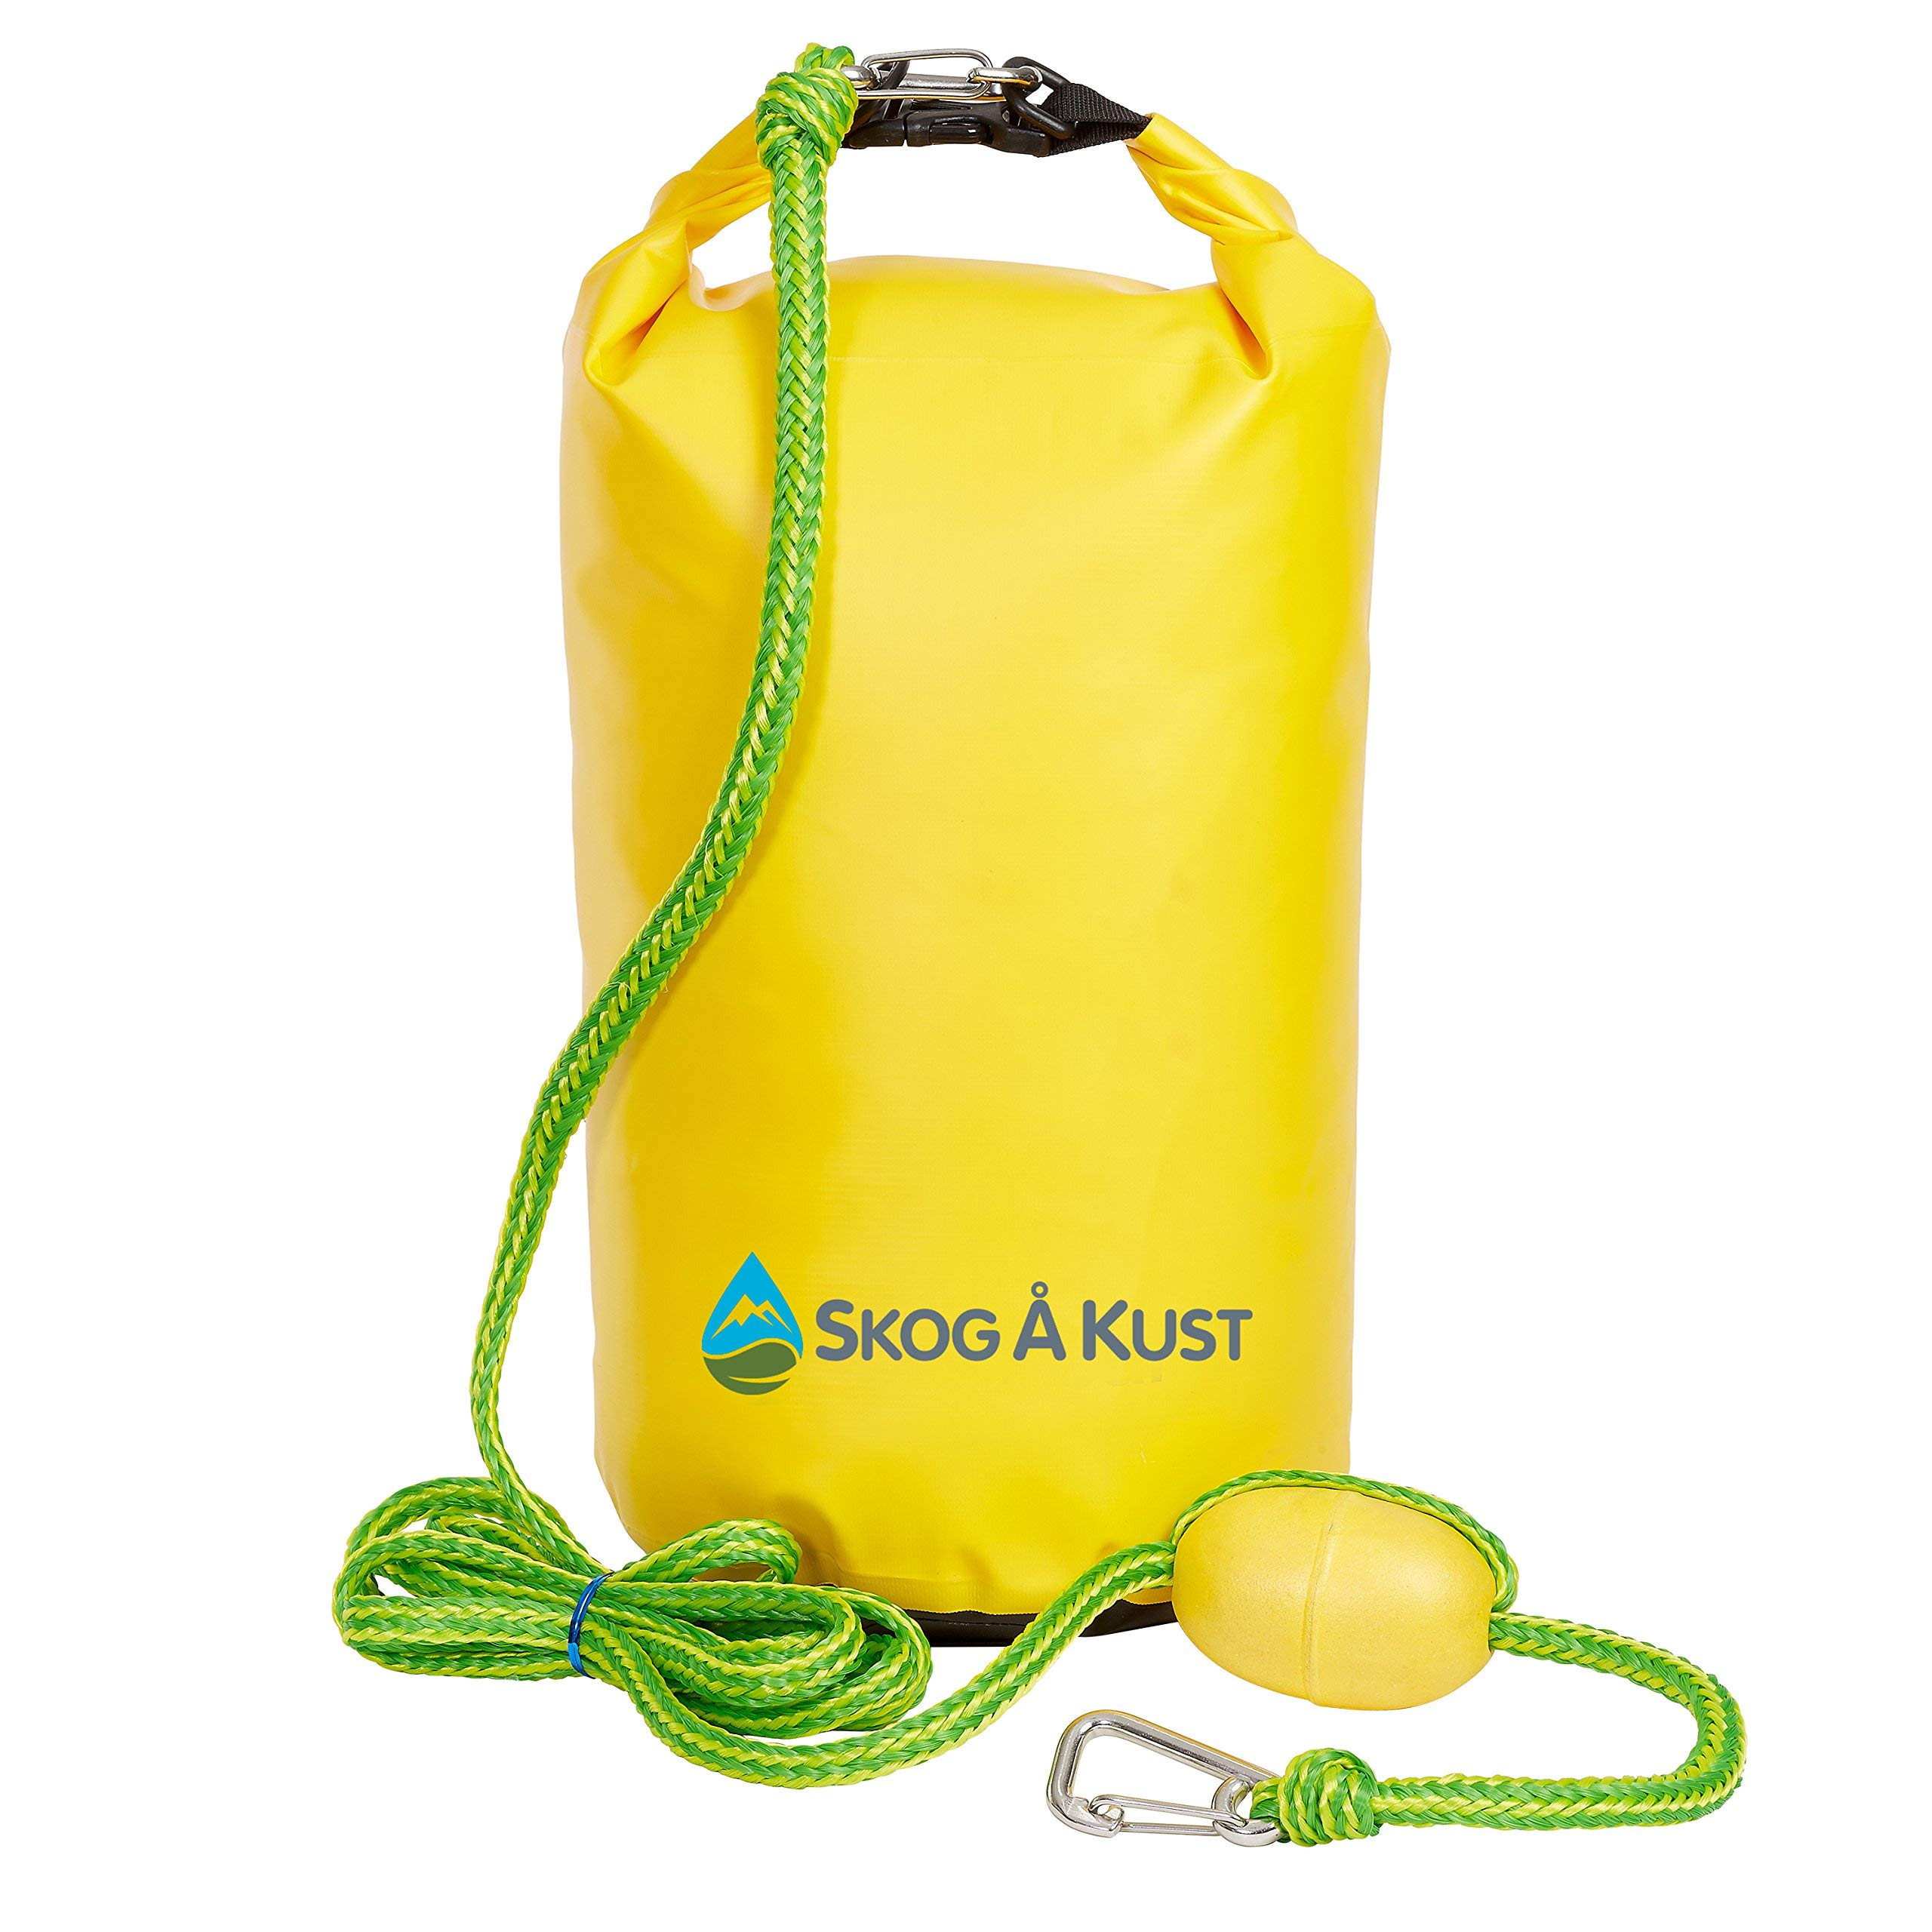 Skog Å Kust SandSak 2-in-1 Sand Anchor & Dry Bag for PWC, Kayaks & Small Boats by Skog Å Kust